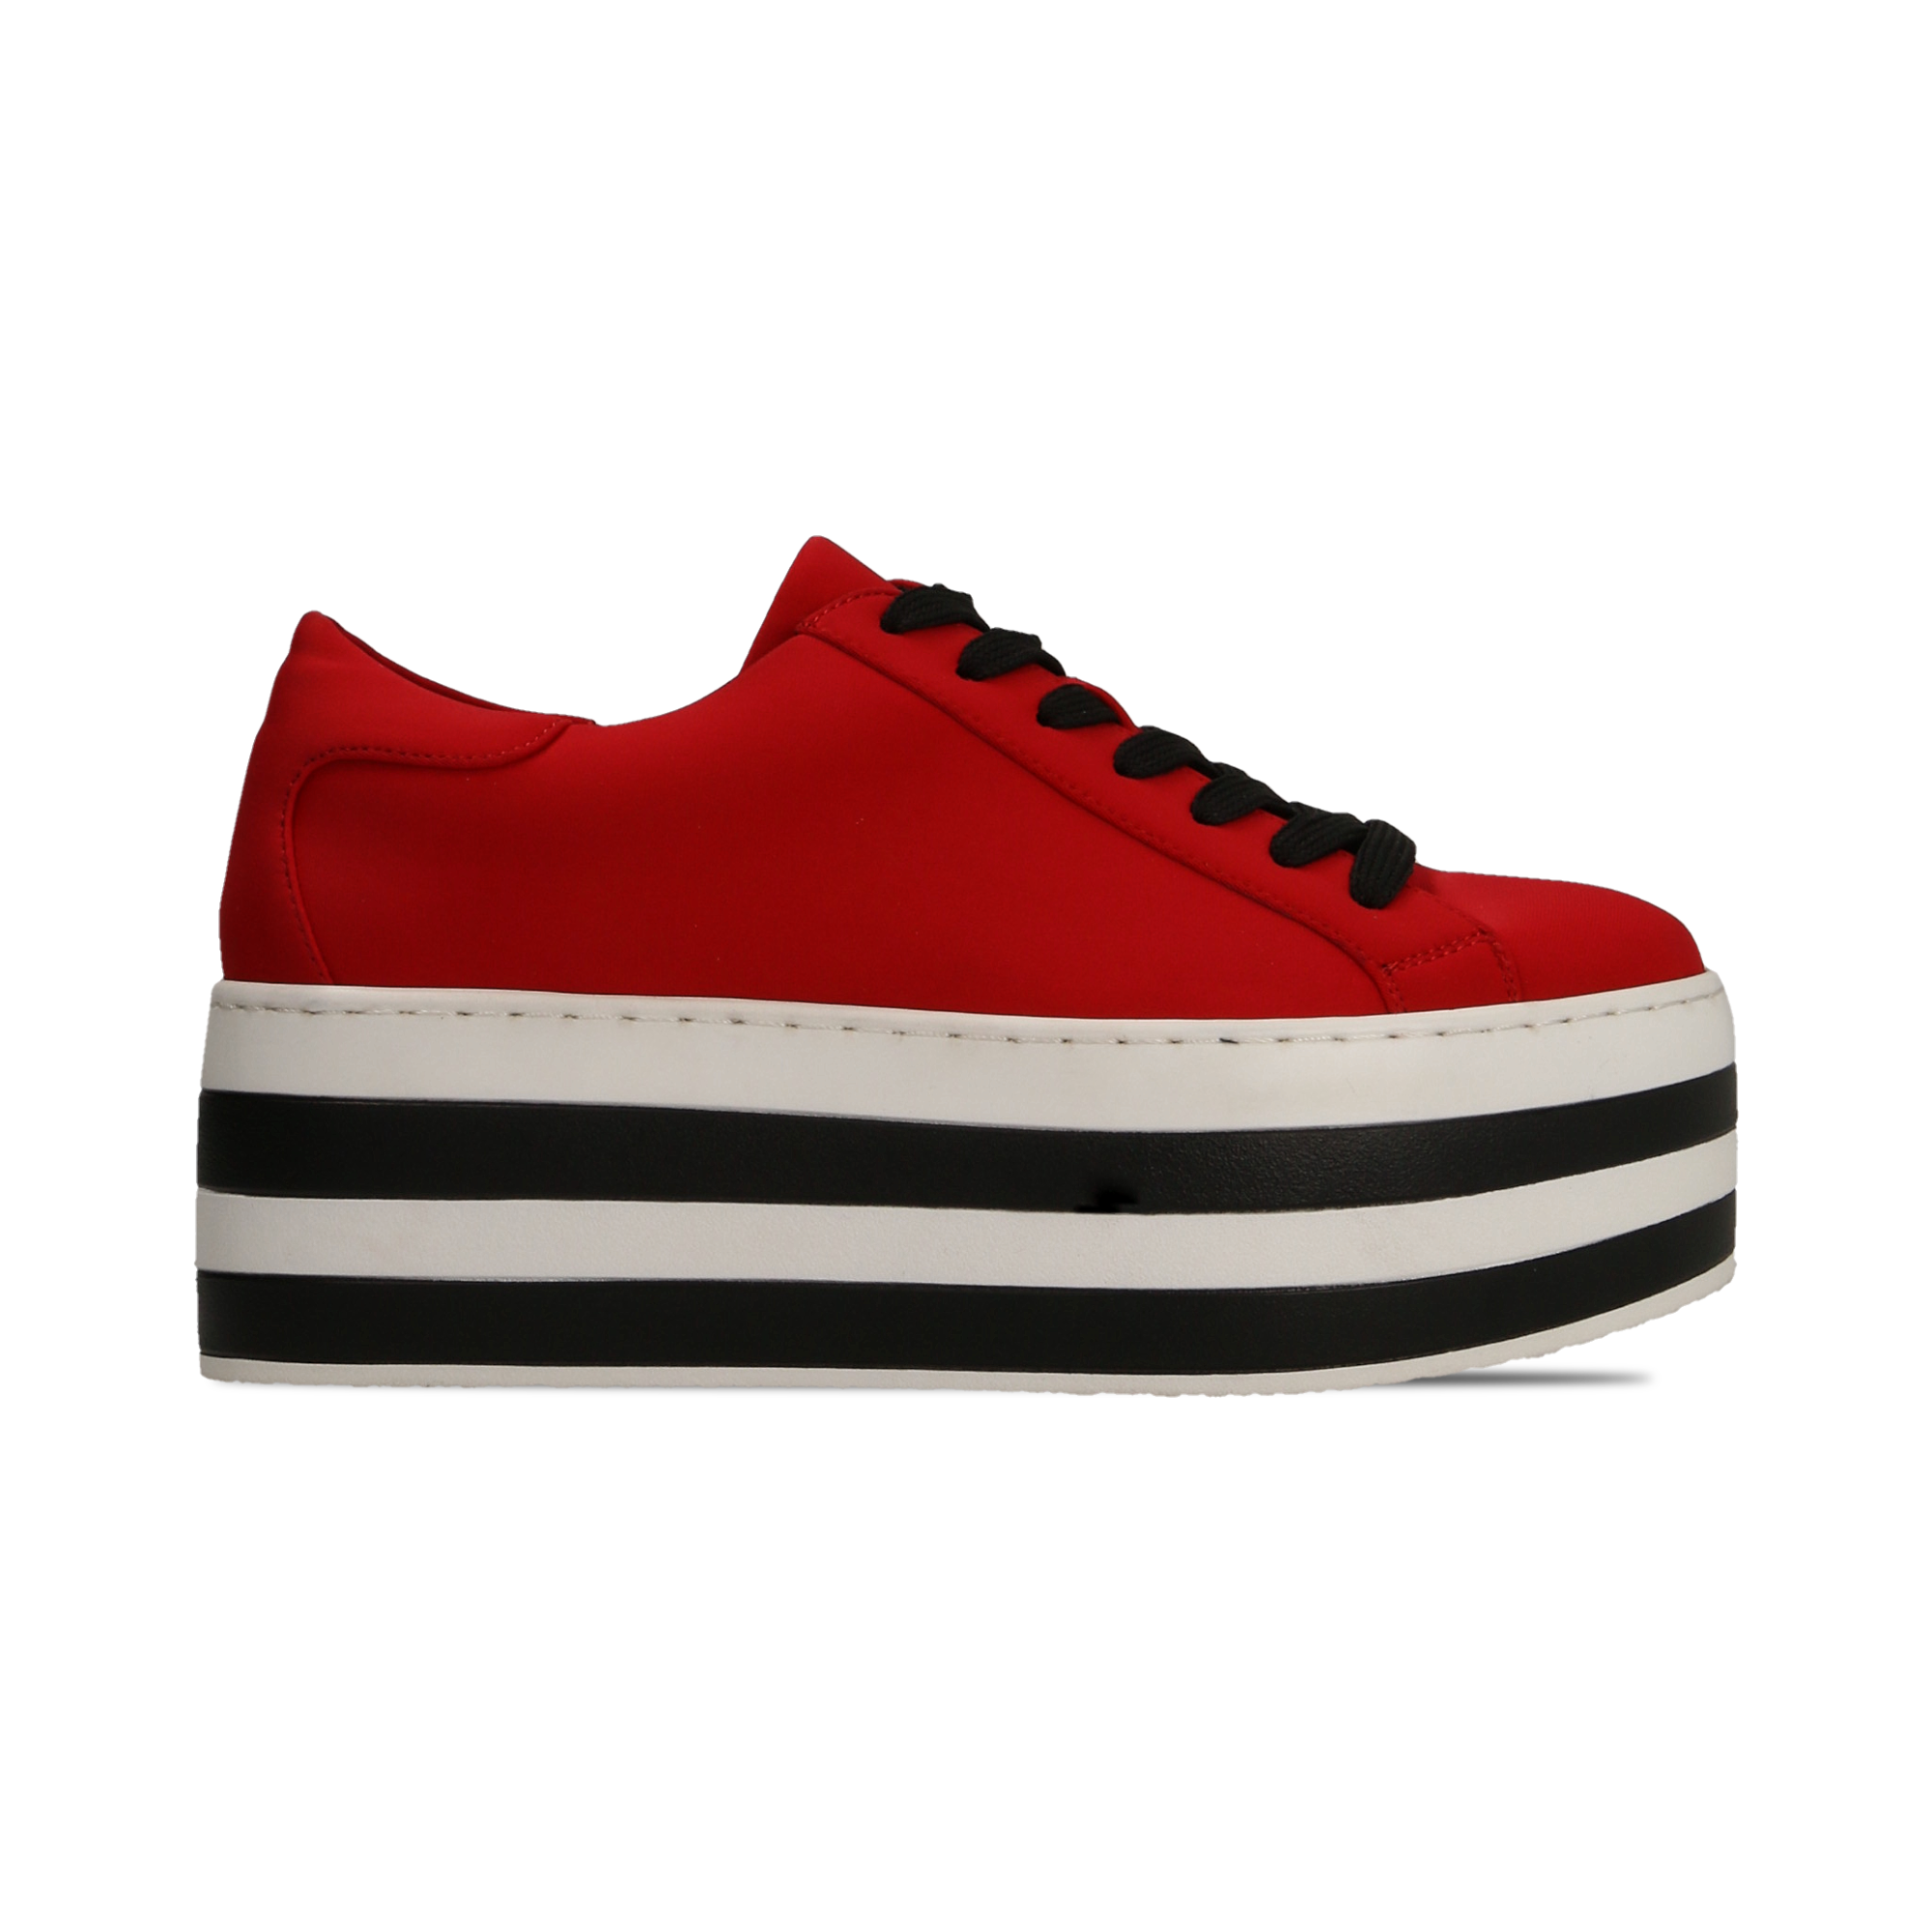 Sneakers rosse con suola platform a righe 6 cm